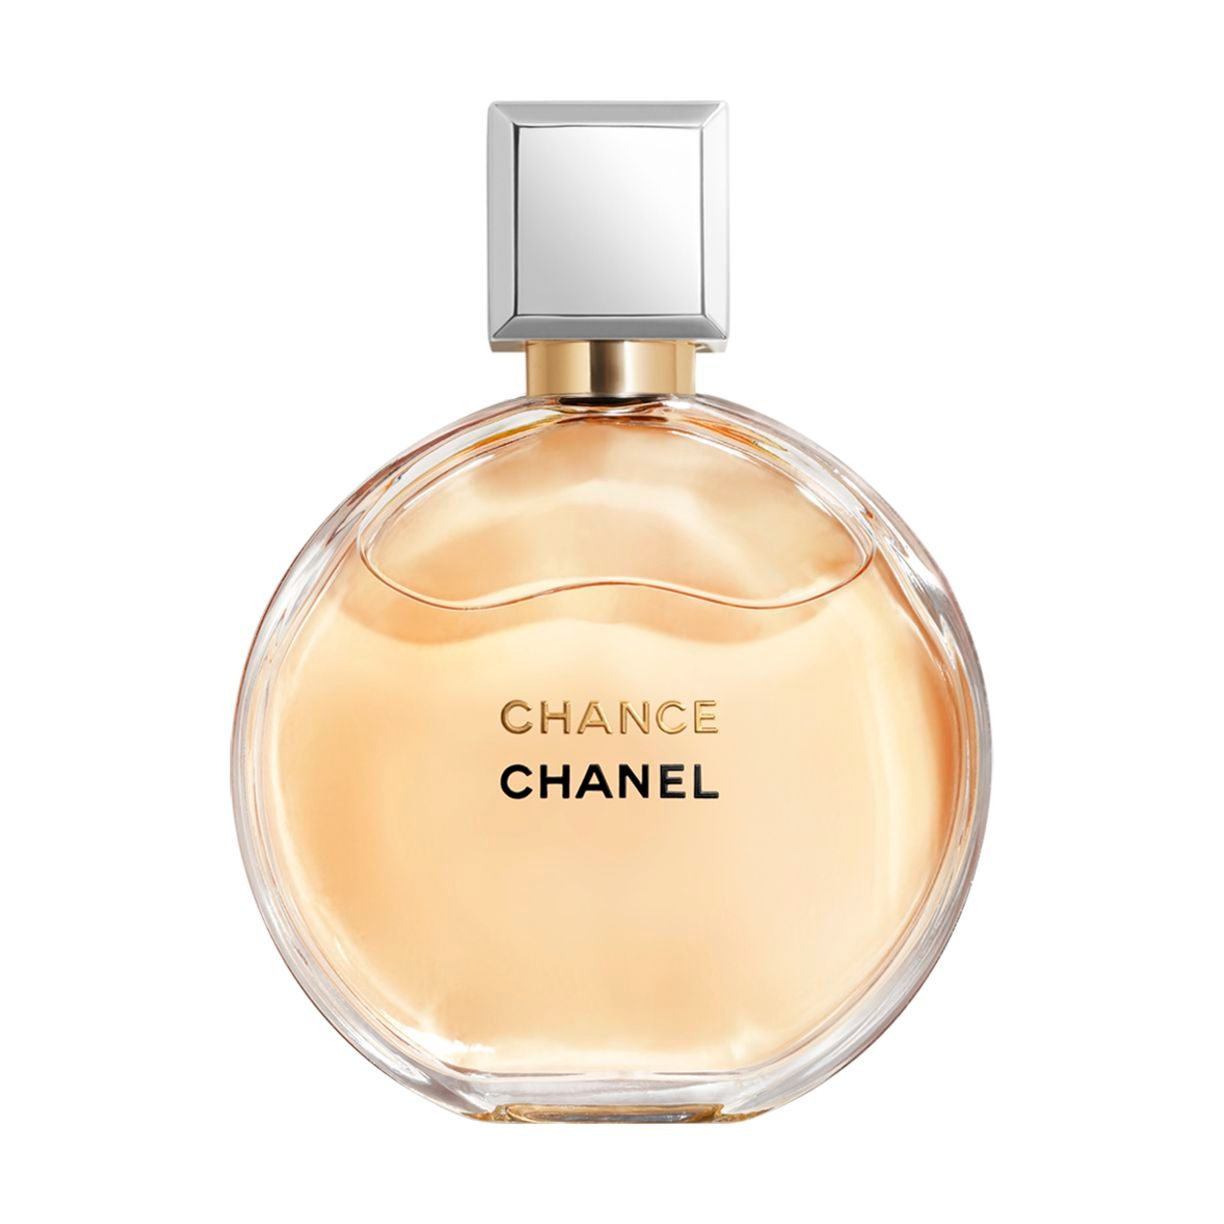 CHANCE EAU DE PARFUM SPRAY 35ml